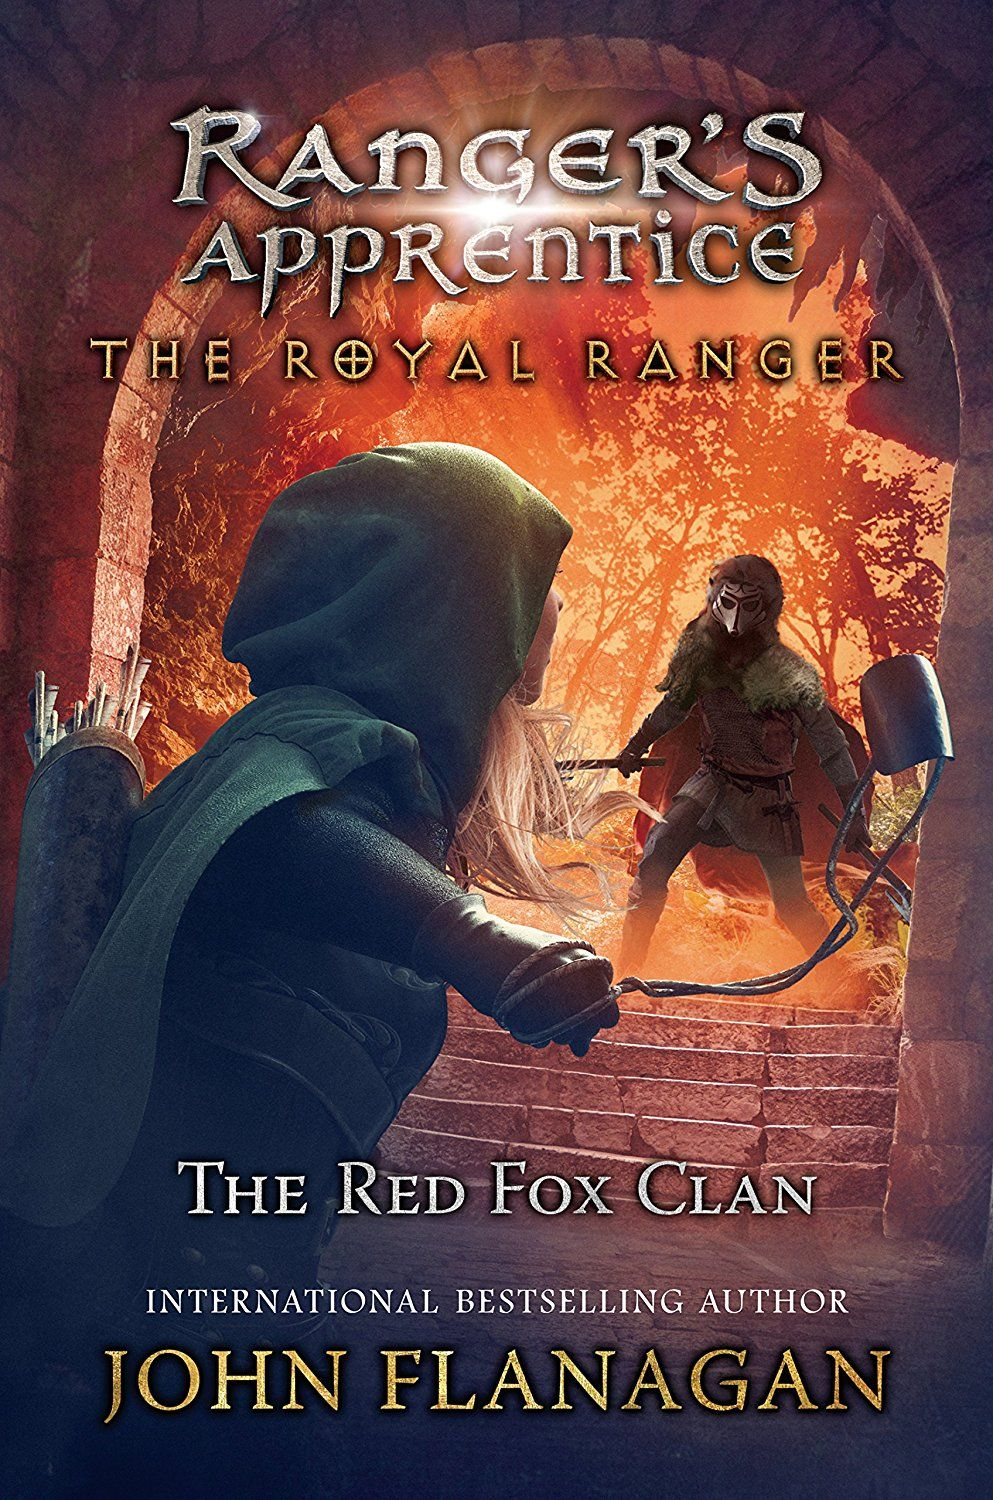 The Red Fox Clan Ranger S Apprentice The Royal Ranger Kindle Edition By John Flanagan Children Kindle Ebooks Rangers Apprentice Free Reading Online Books